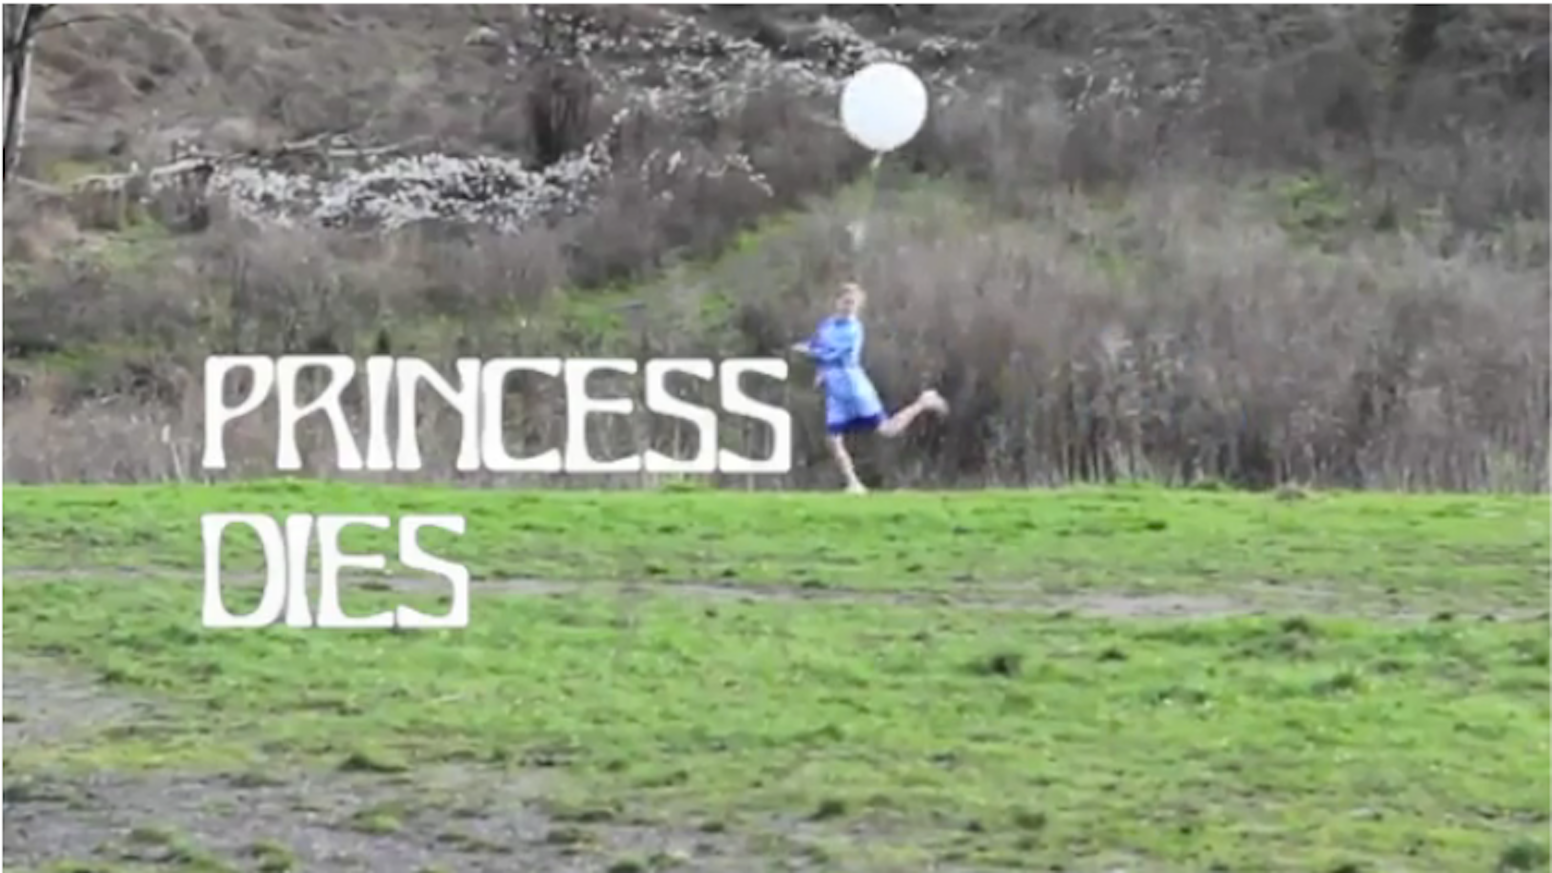 Princess Dies Residency at Wonder Valley Land Art Project by